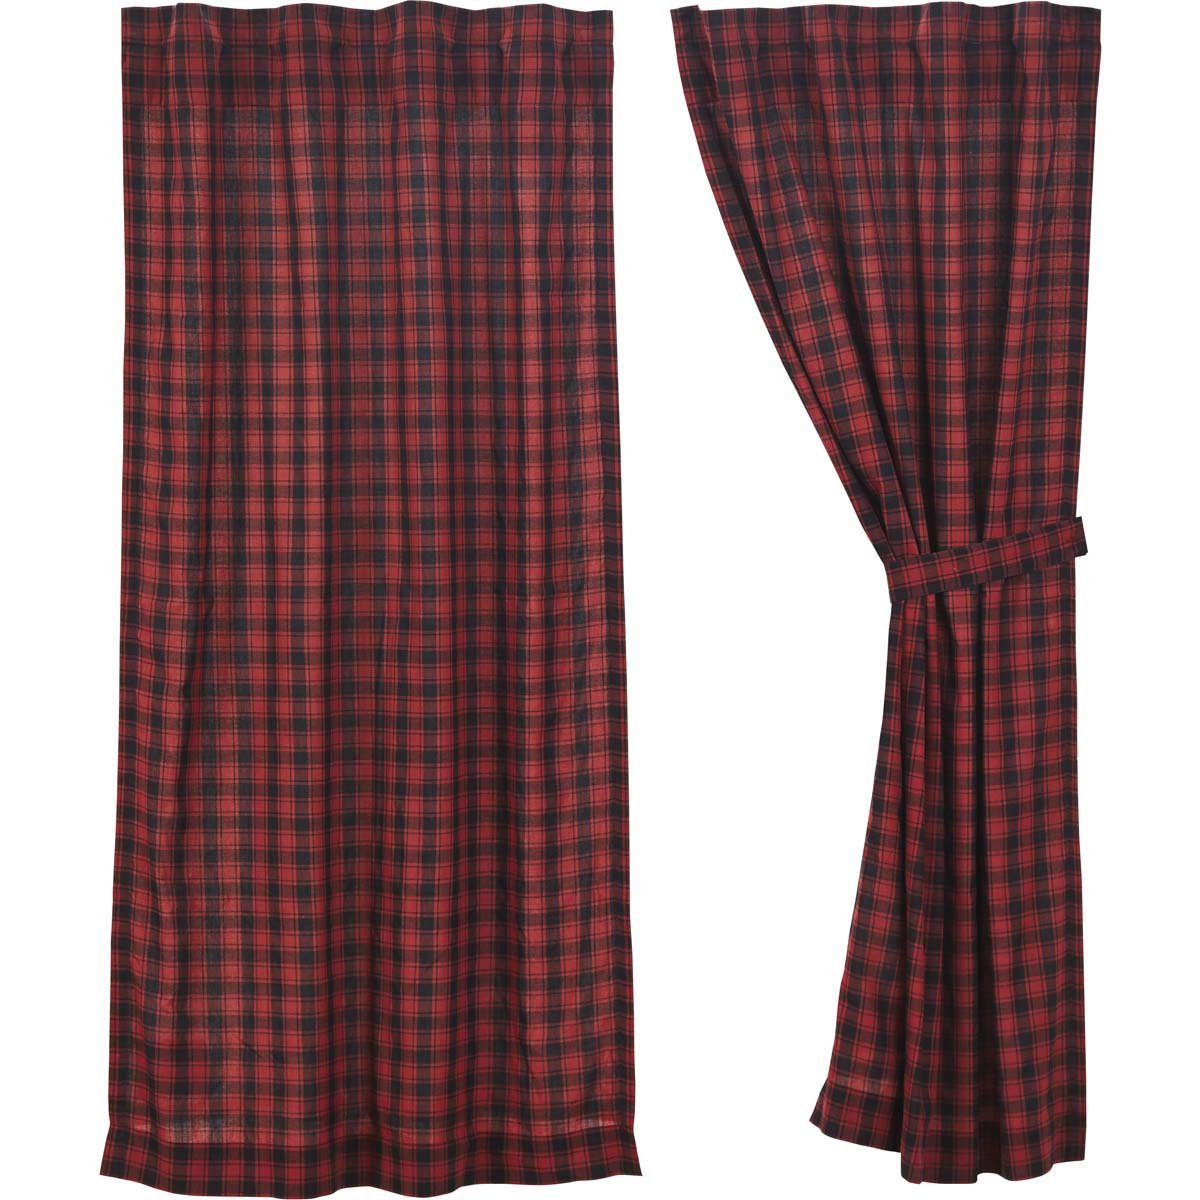 Cumberland Tier Pair Rod Pocket Cotton Buffalo Check Kitchen Curtains Inside Current Amazon: Vhc Brands Rustic & Lodge Window Cumberland Red (View 11 of 20)